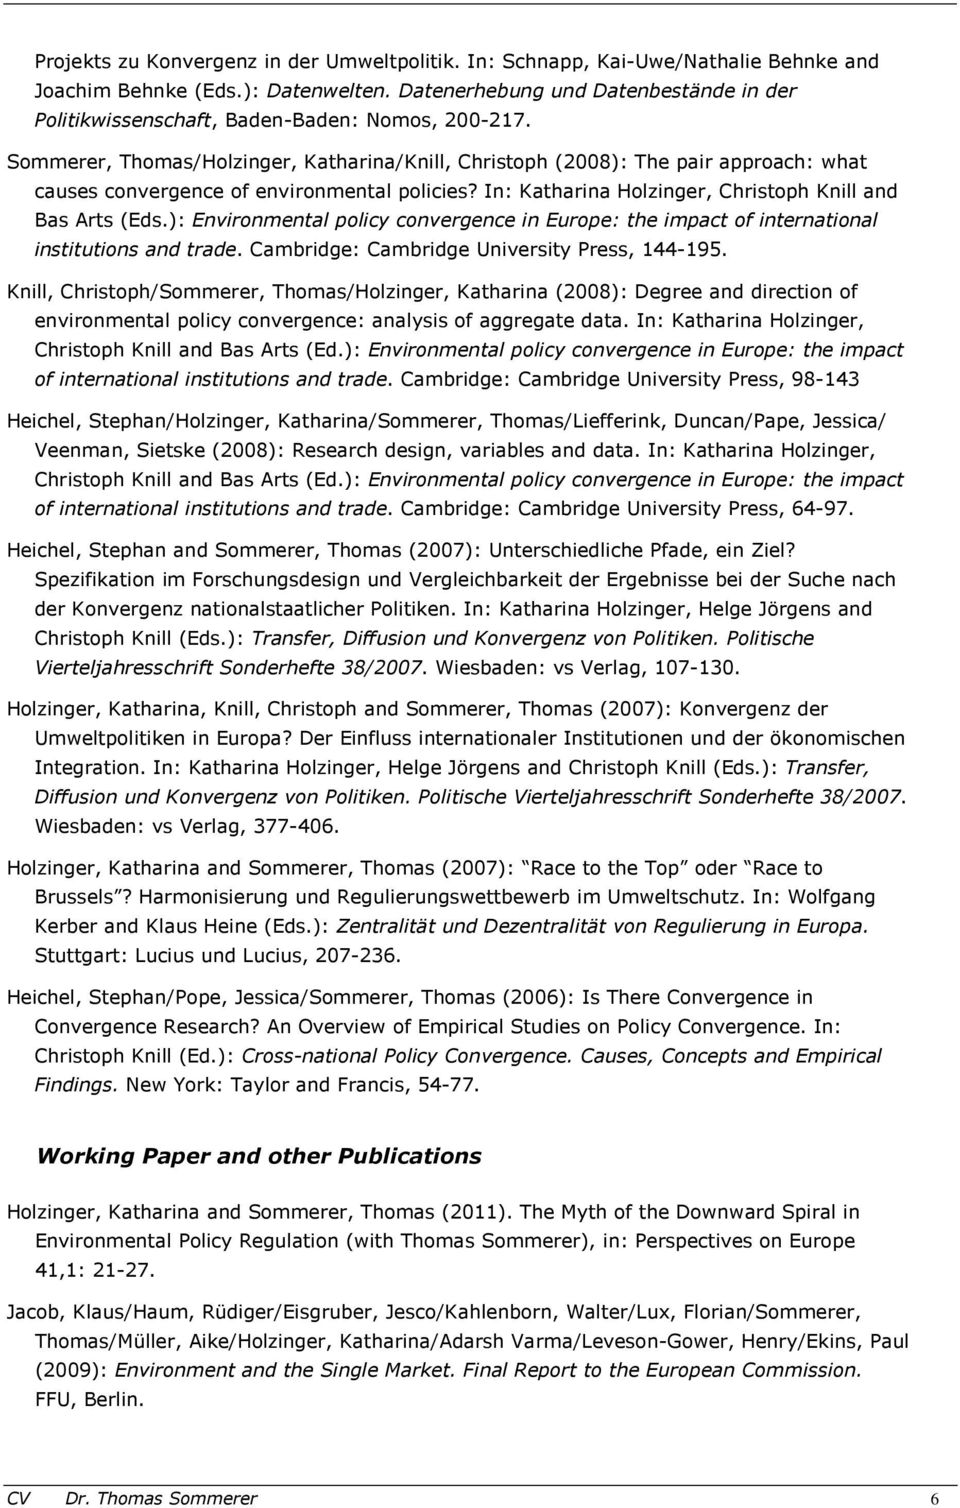 Sommerer, Thomas/Holzinger, Katharina/Knill, Christoph (2008): The pair approach: what causes convergence of environmental policies? In: Katharina Holzinger, Christoph Knill and Bas Arts (Eds.